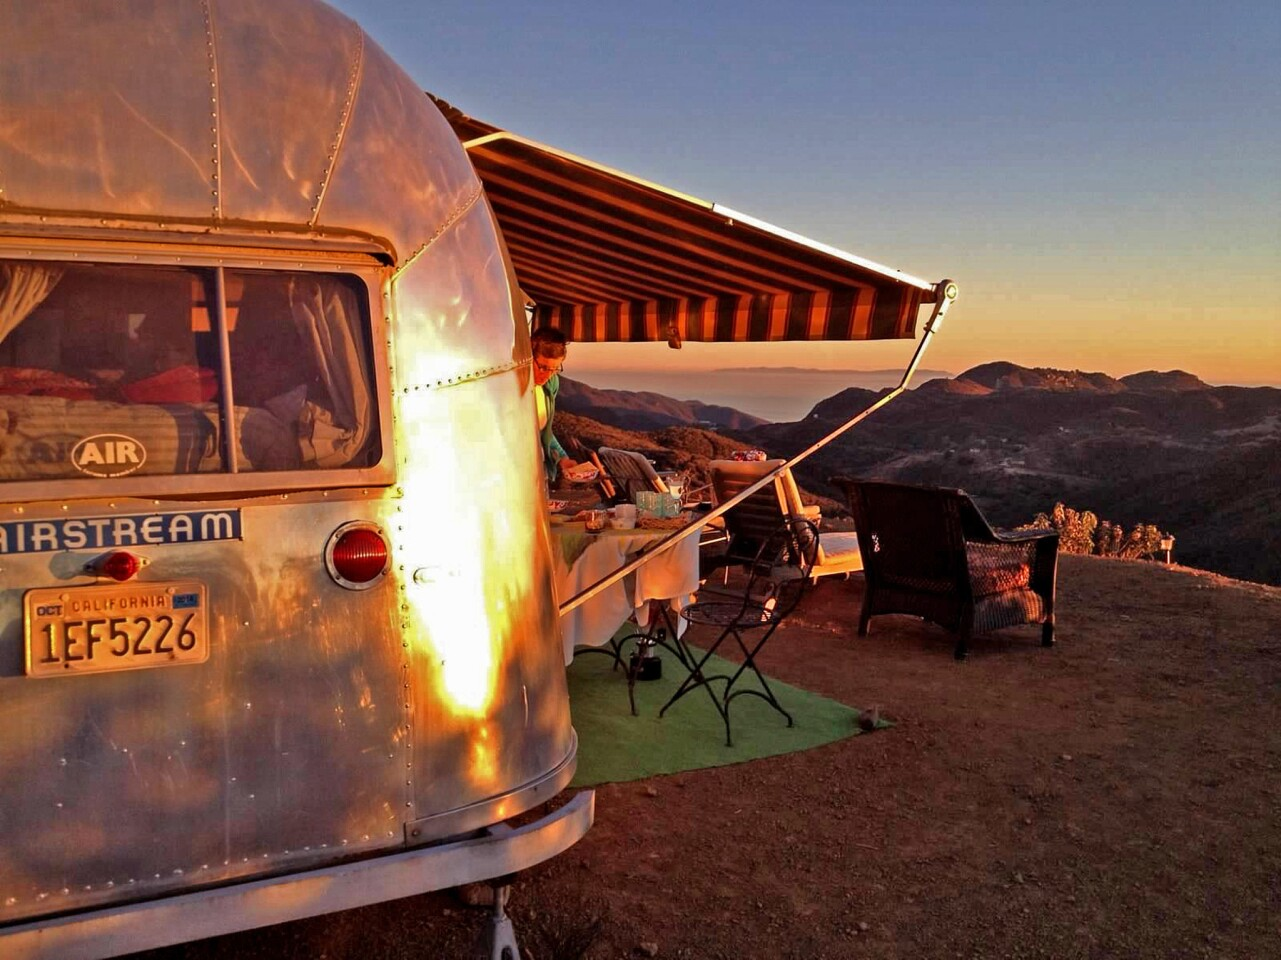 On a plateau next to a shiny 1957 Airstream Flying Cloud with 360-degree views of the Pacific Ocean, we could sit out and watch the Santa Monica Mountains and a giant sapphire sky. There was no one else in sight.